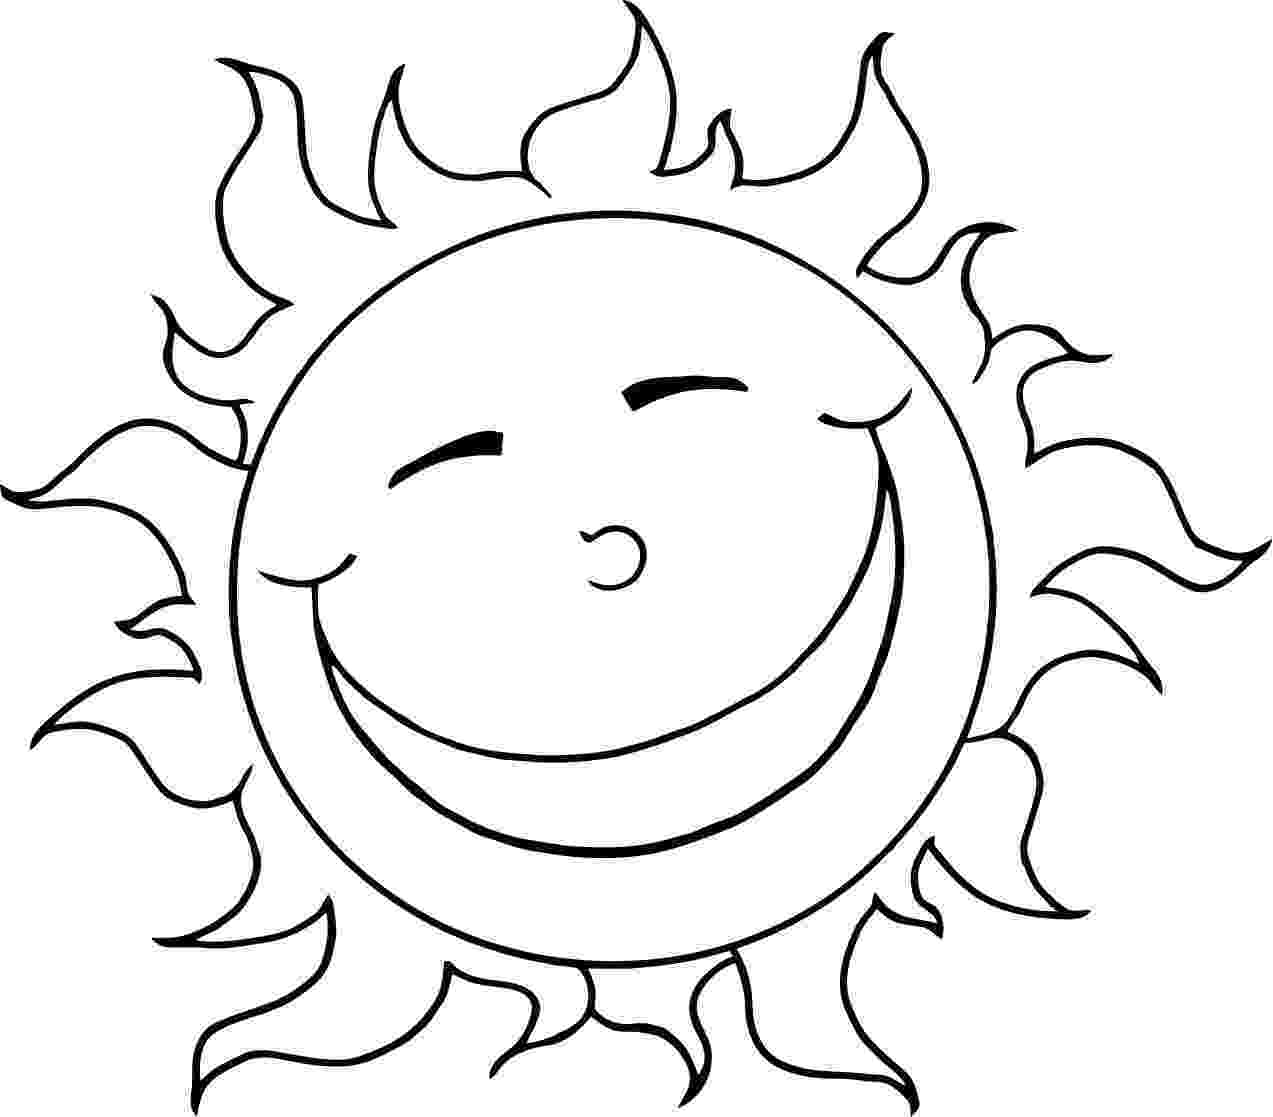 coloring book sun free printable sun coloring pages for kids book coloring sun